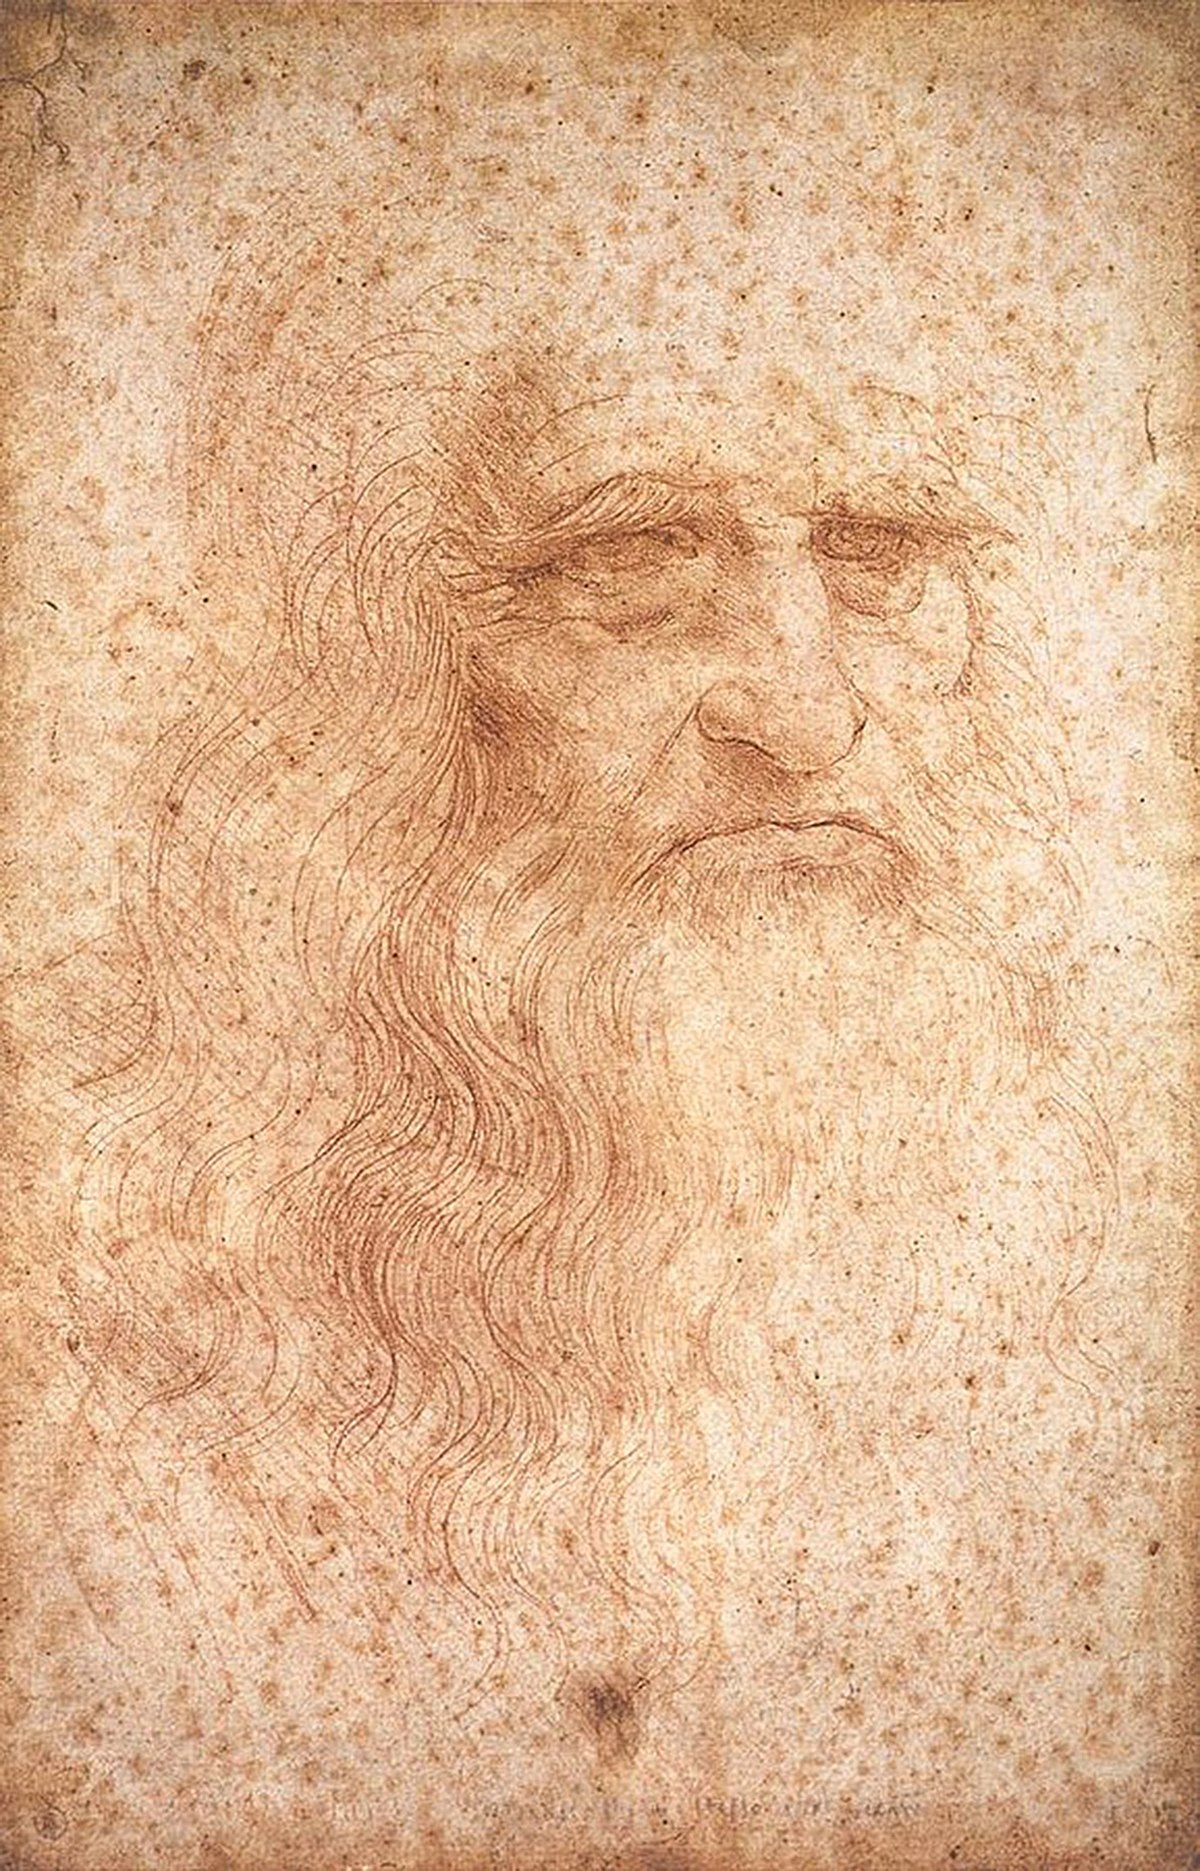 portrait of a man in red chalk wikipedia. Black Bedroom Furniture Sets. Home Design Ideas